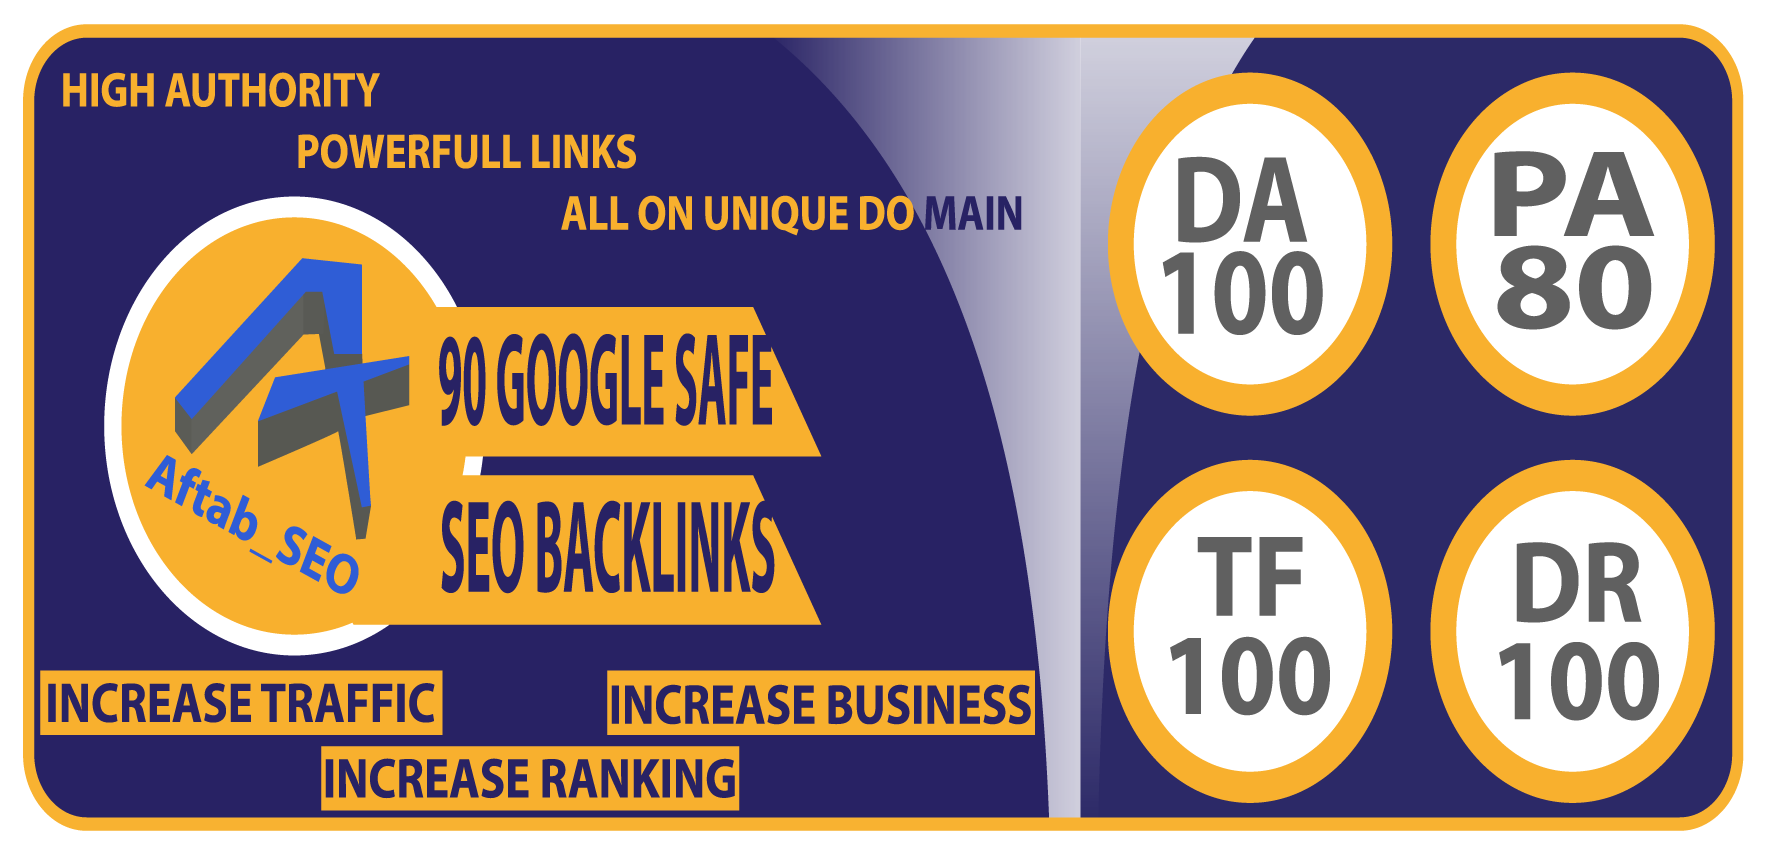 Seo All In One 90 High Authority Unique Domain Do-follow Backlinks On TF DA Sites